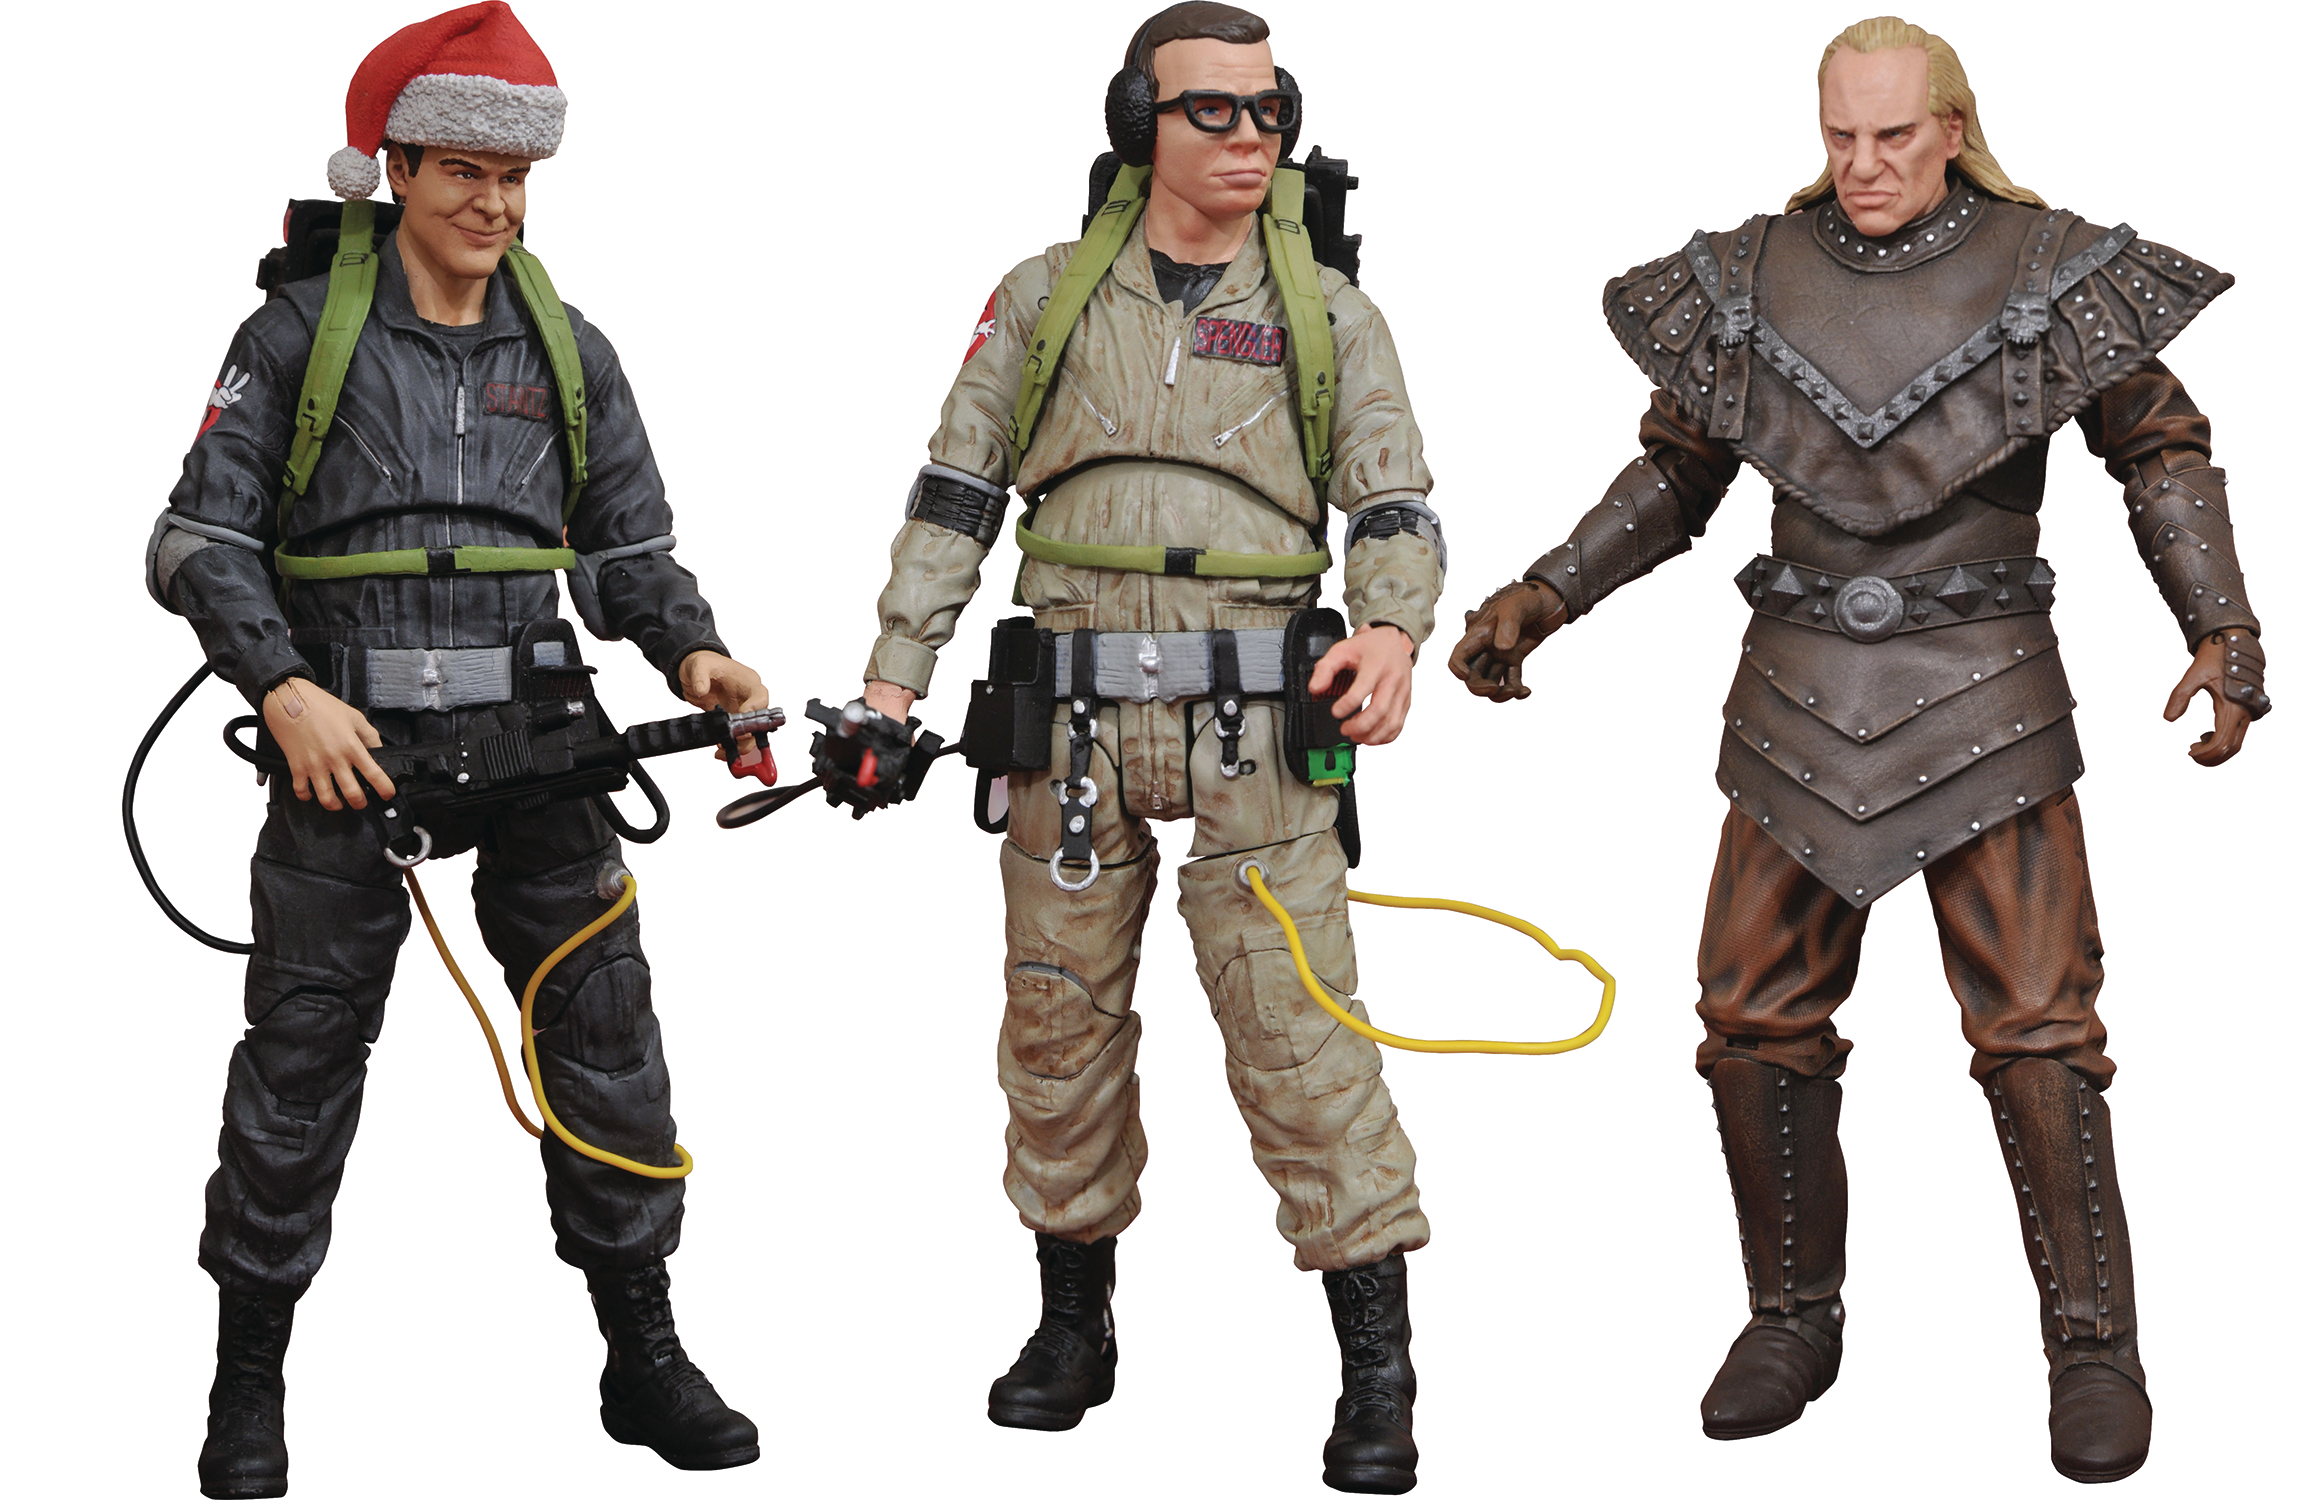 GHOSTBUSTERS 2 SELECT AF SERIES 6 ASST